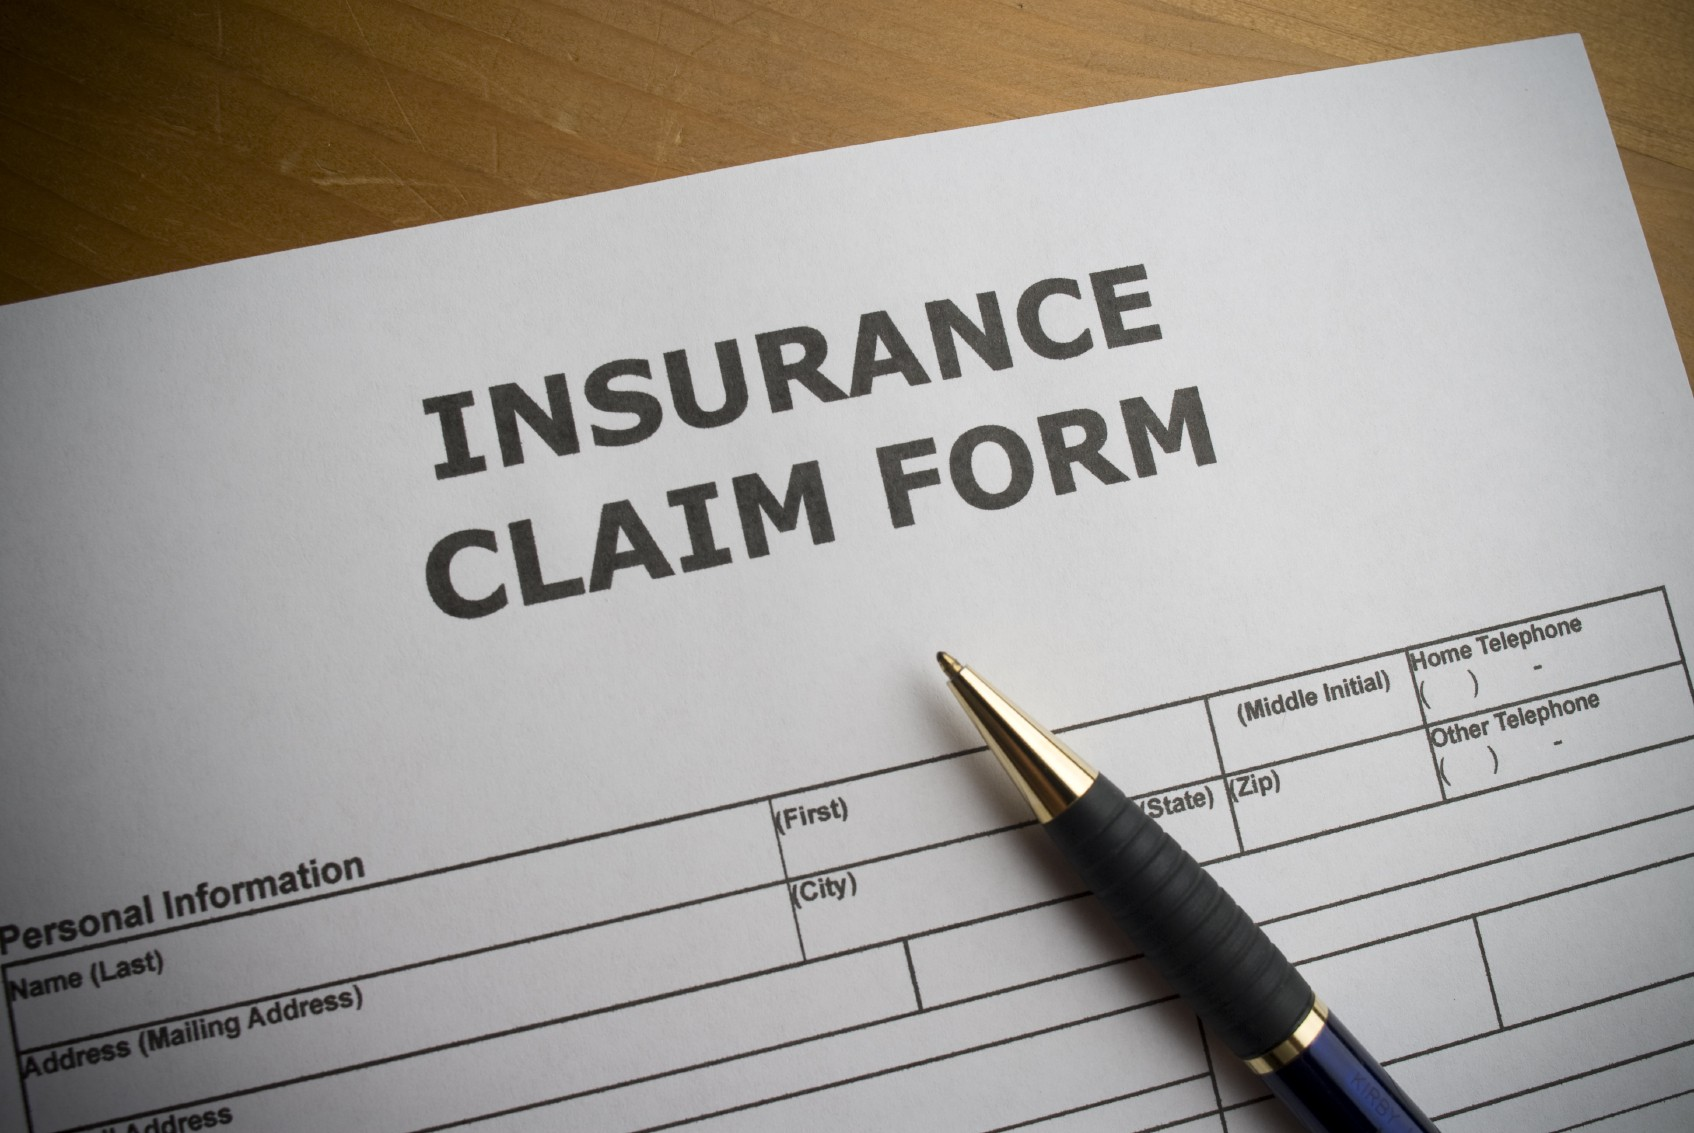 bio-hazard-and-water-damage-insurance-claim-form